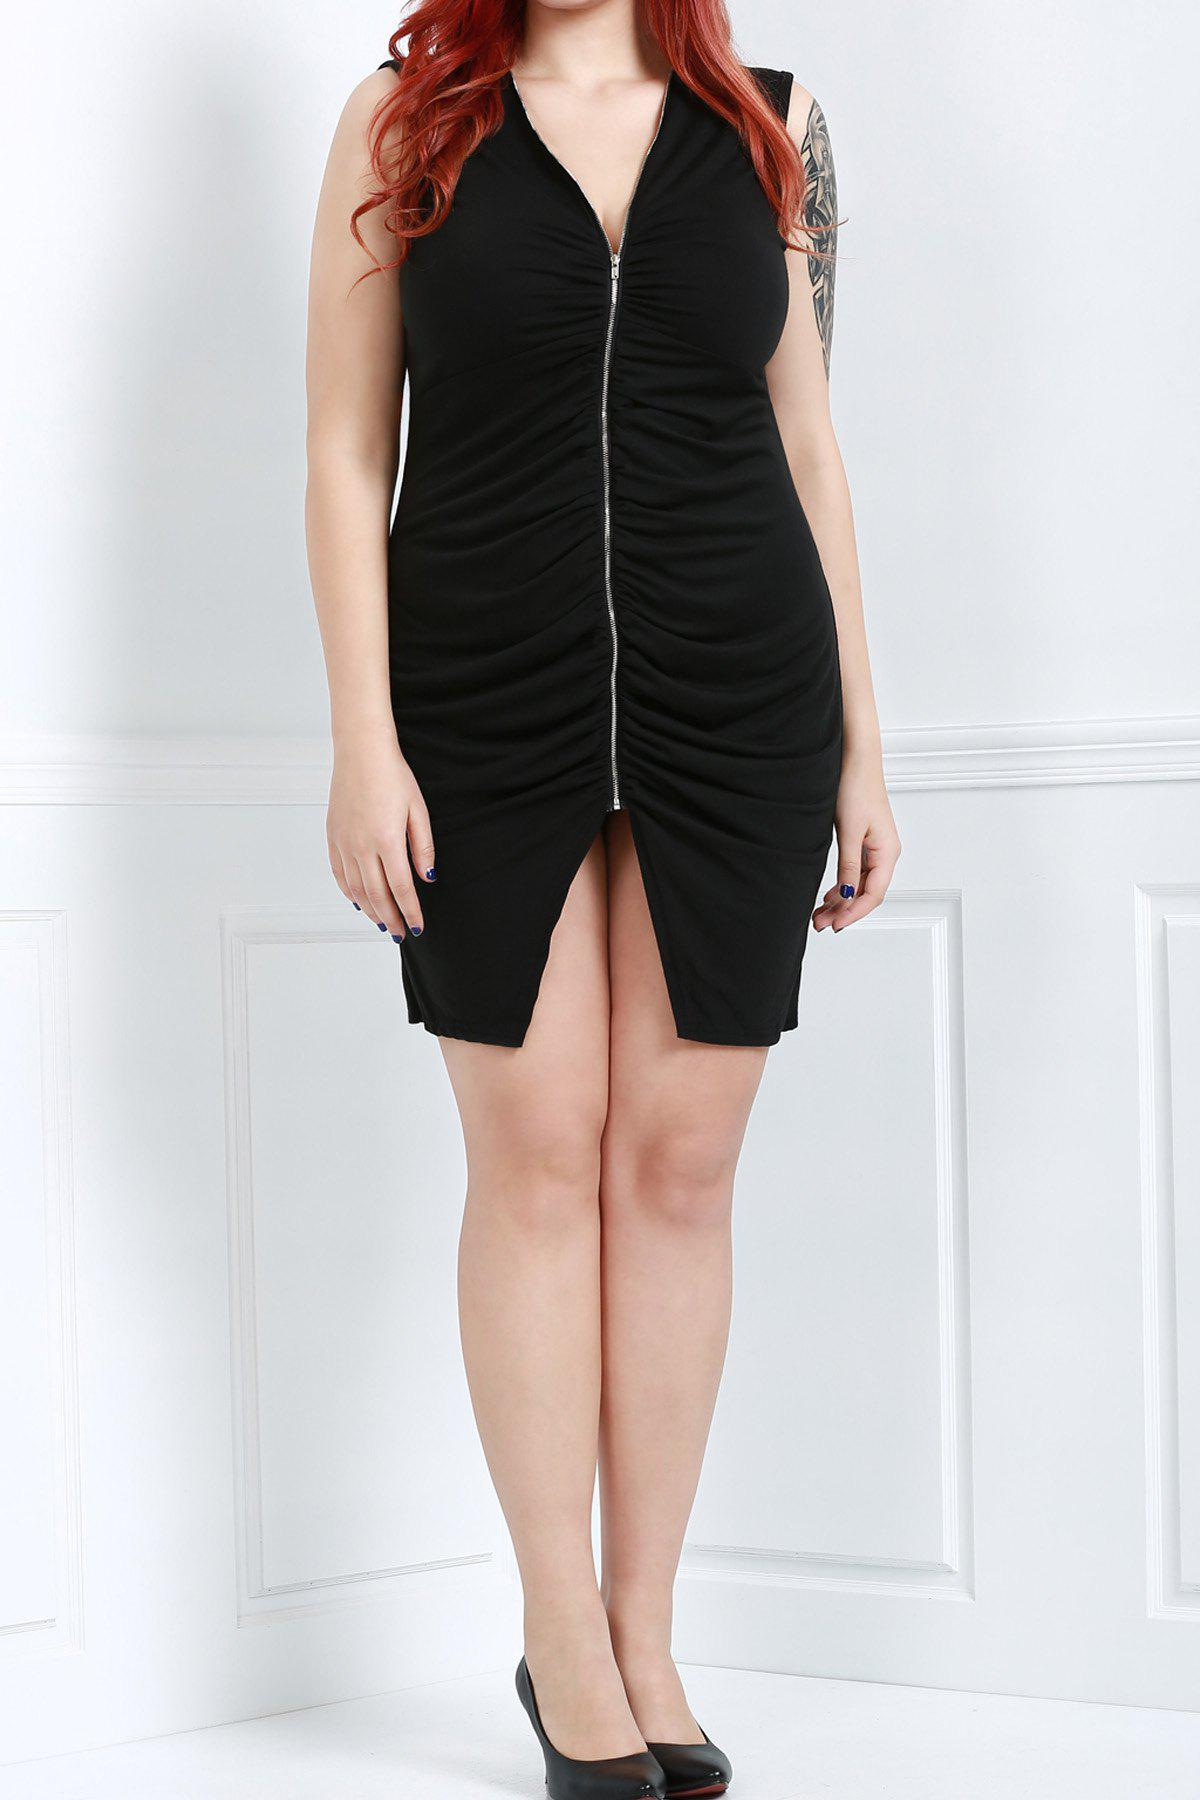 Sexy Plunging Neck Black Cut Out Plus Size Sleeveless Women's Bodycon Dress